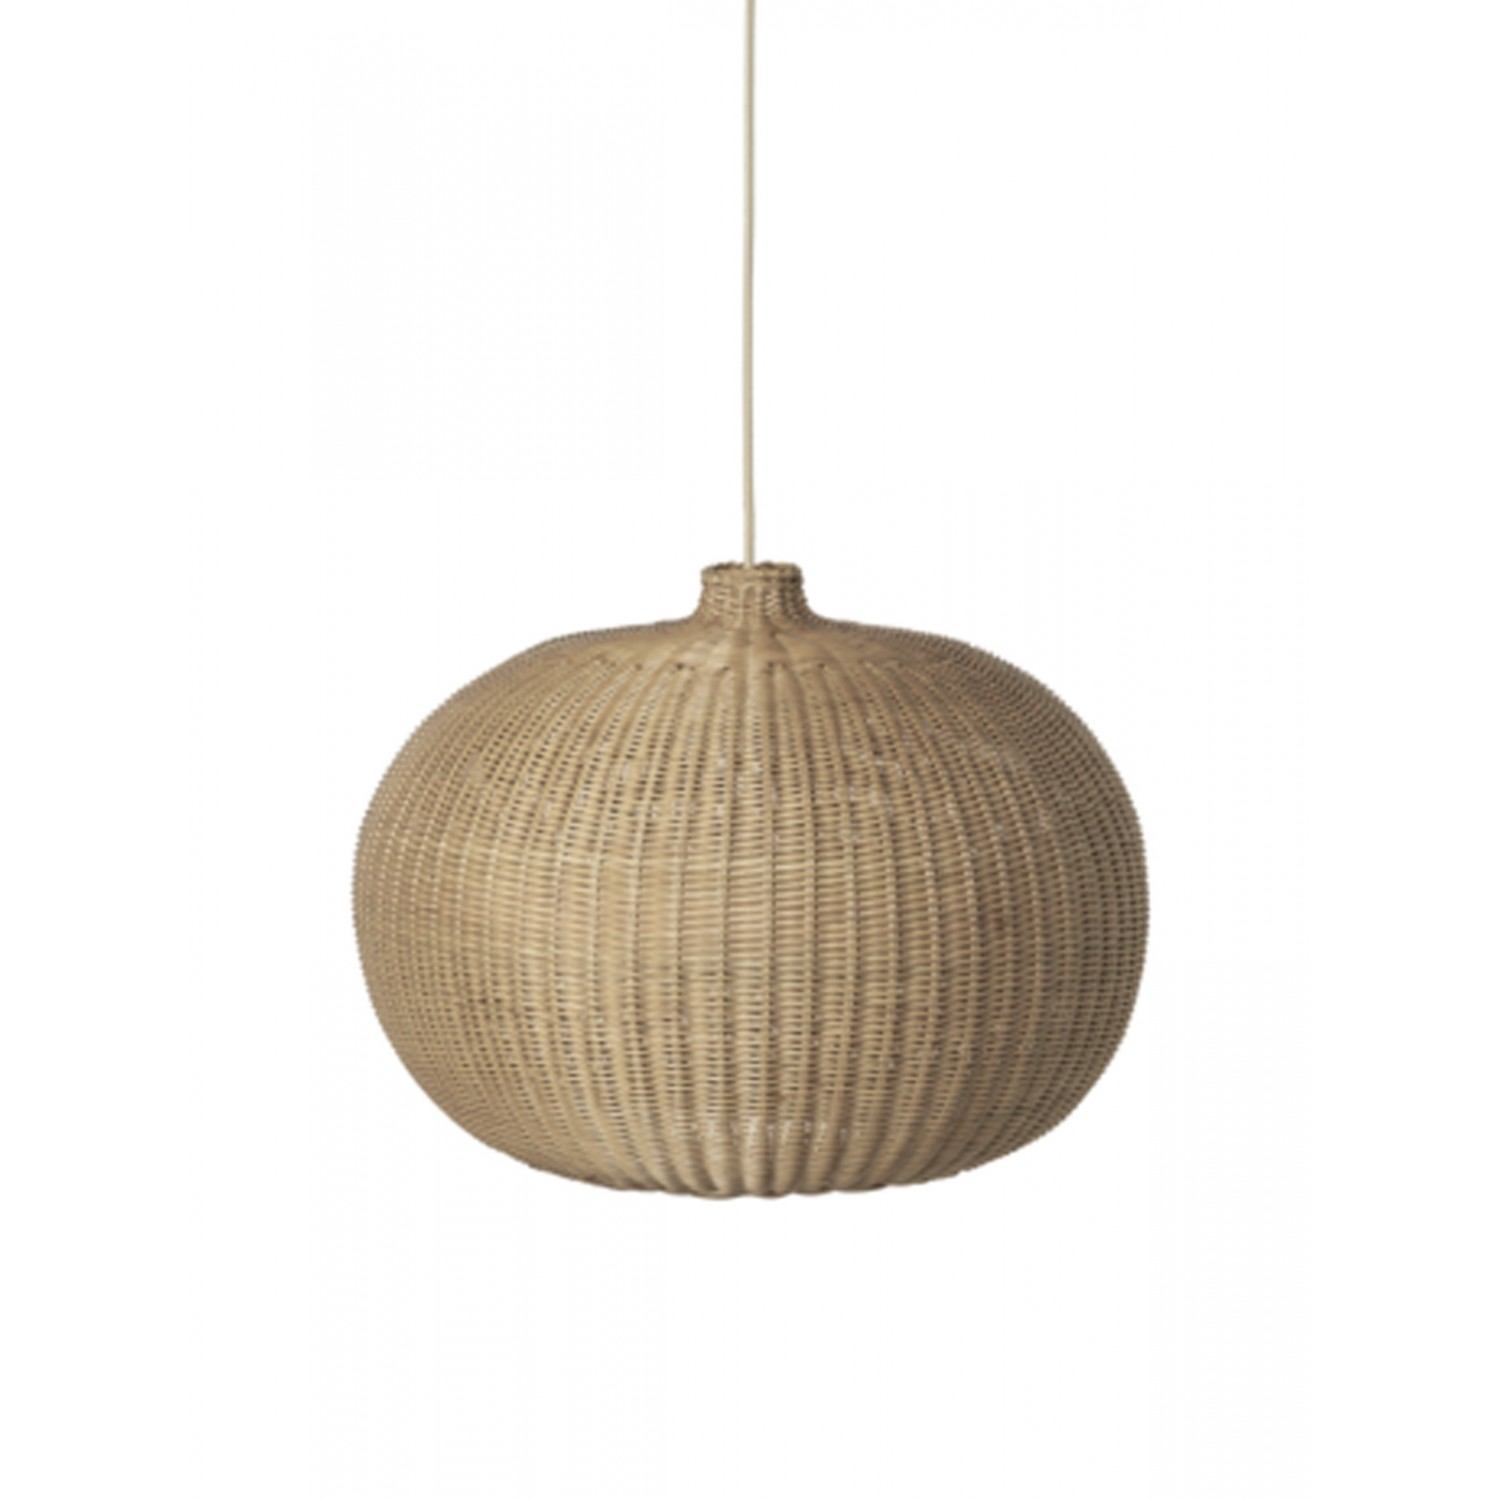 Braided Lampshade - Belly